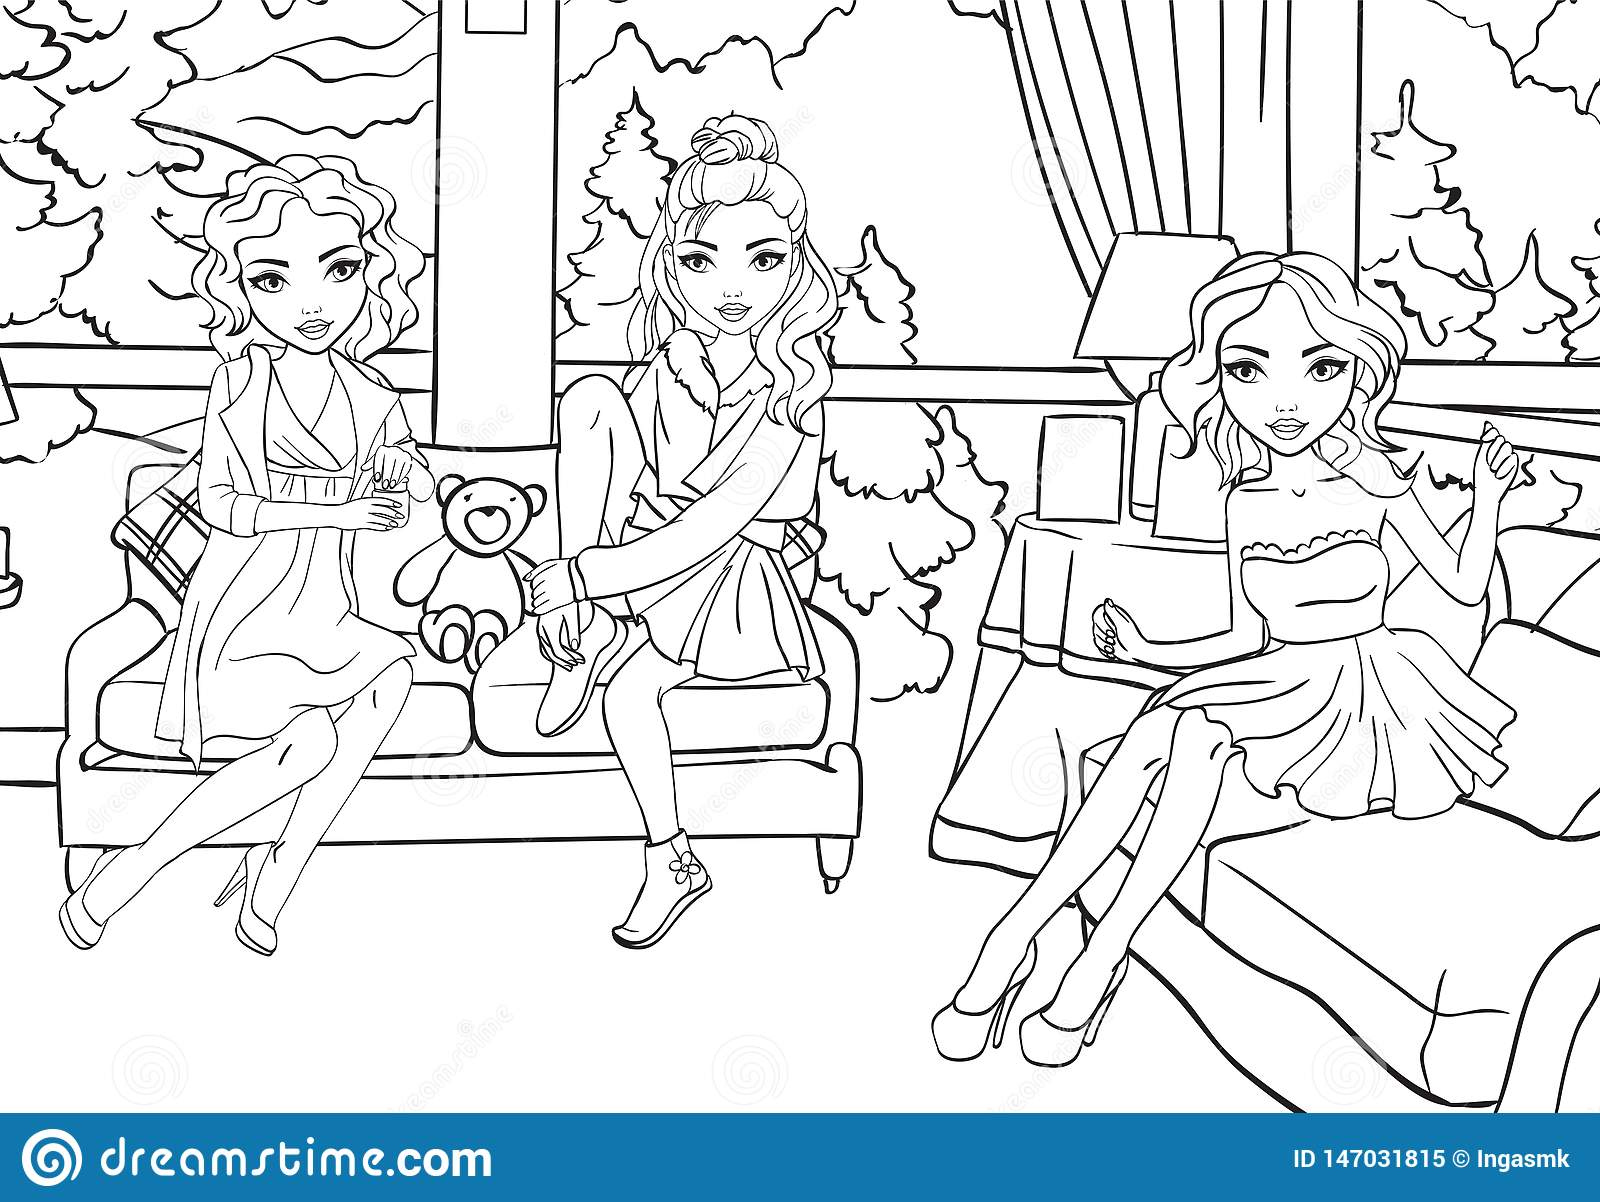 Coloring Book Of Girls Sit In Living Room Stock Vector Illustration Of Young Face 147031815